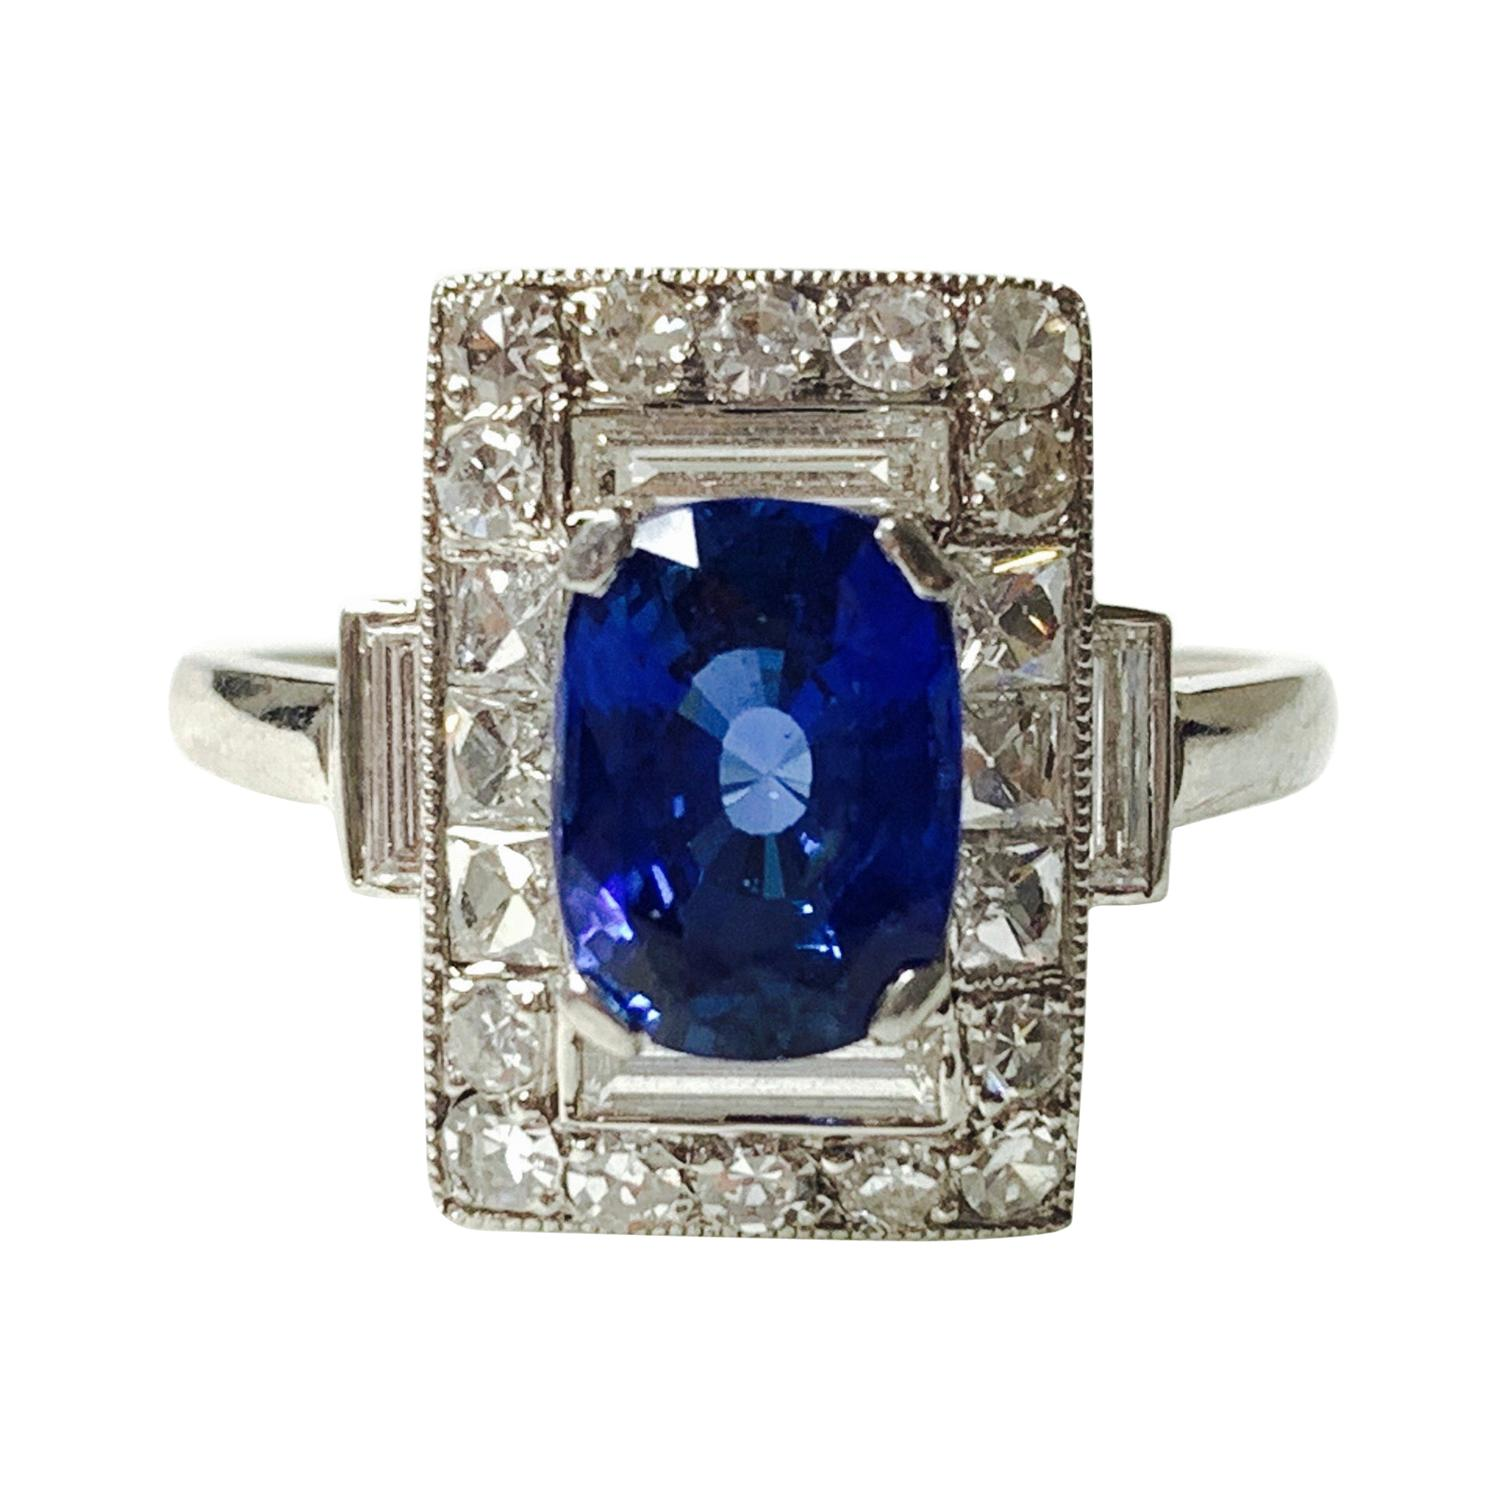 Blue Sapphire and Diamond Engagement Ring in Platinum